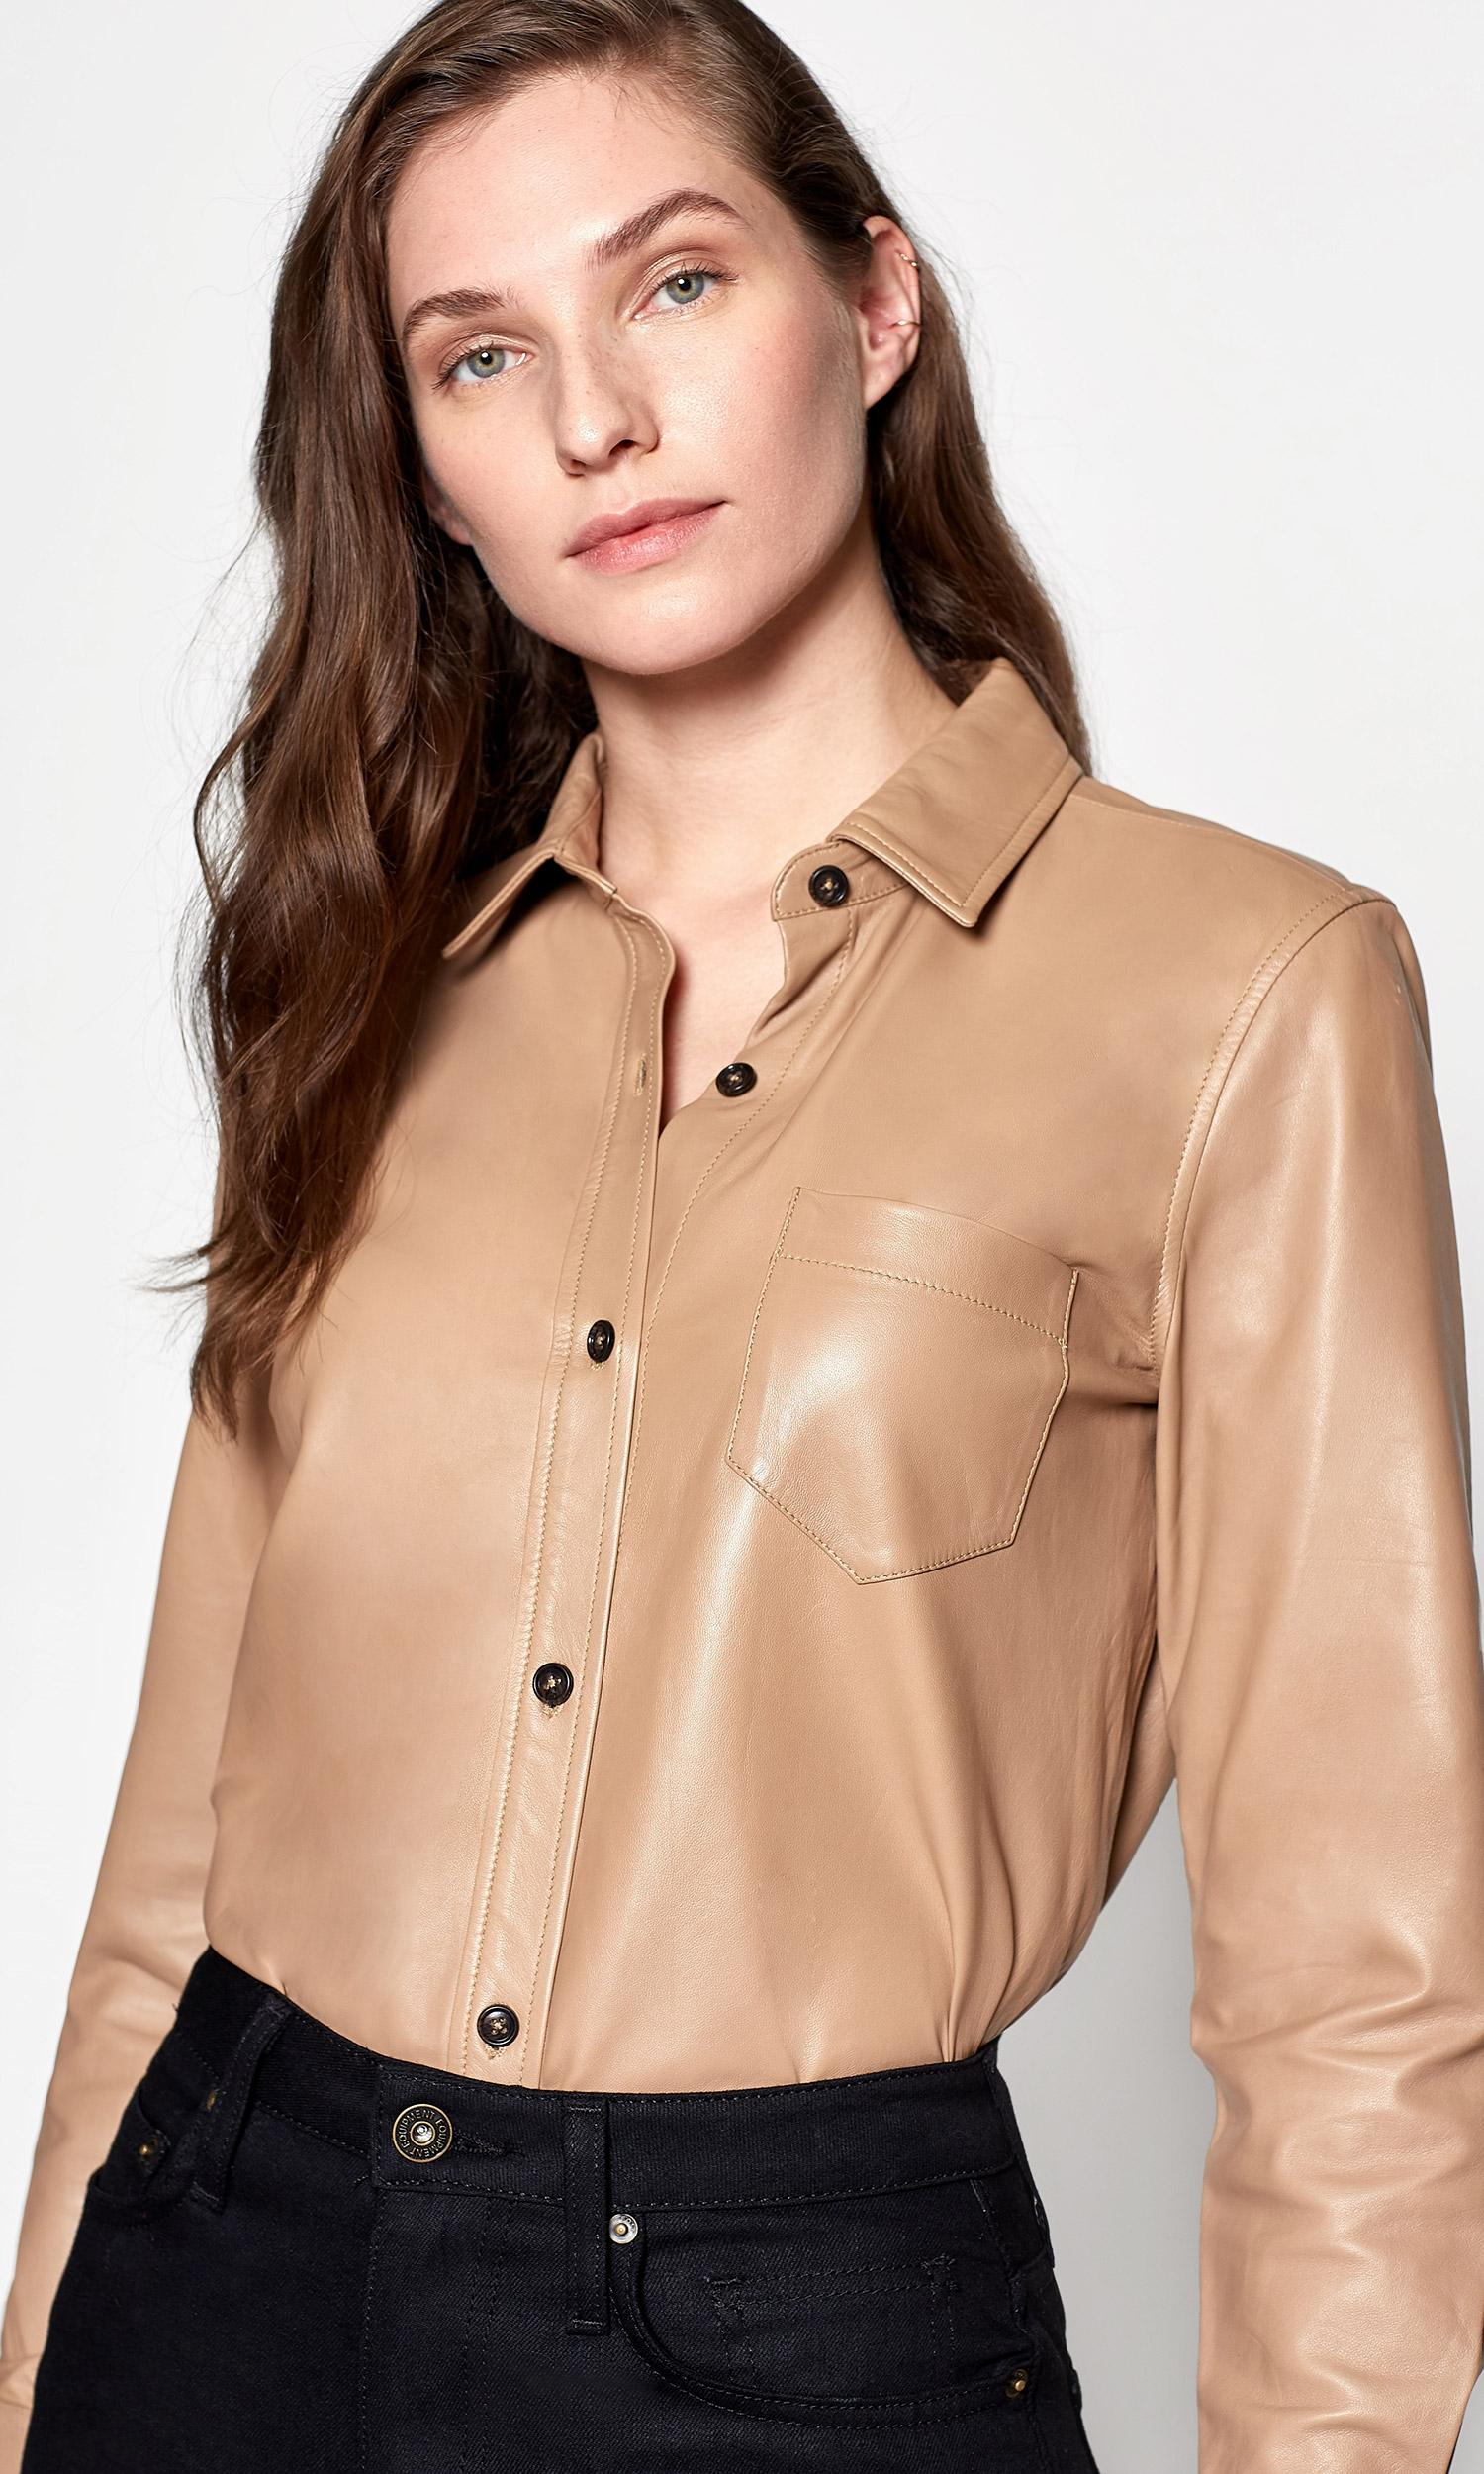 f9cead08d55e0 Equipment. Women s Fanette Leather Shirt